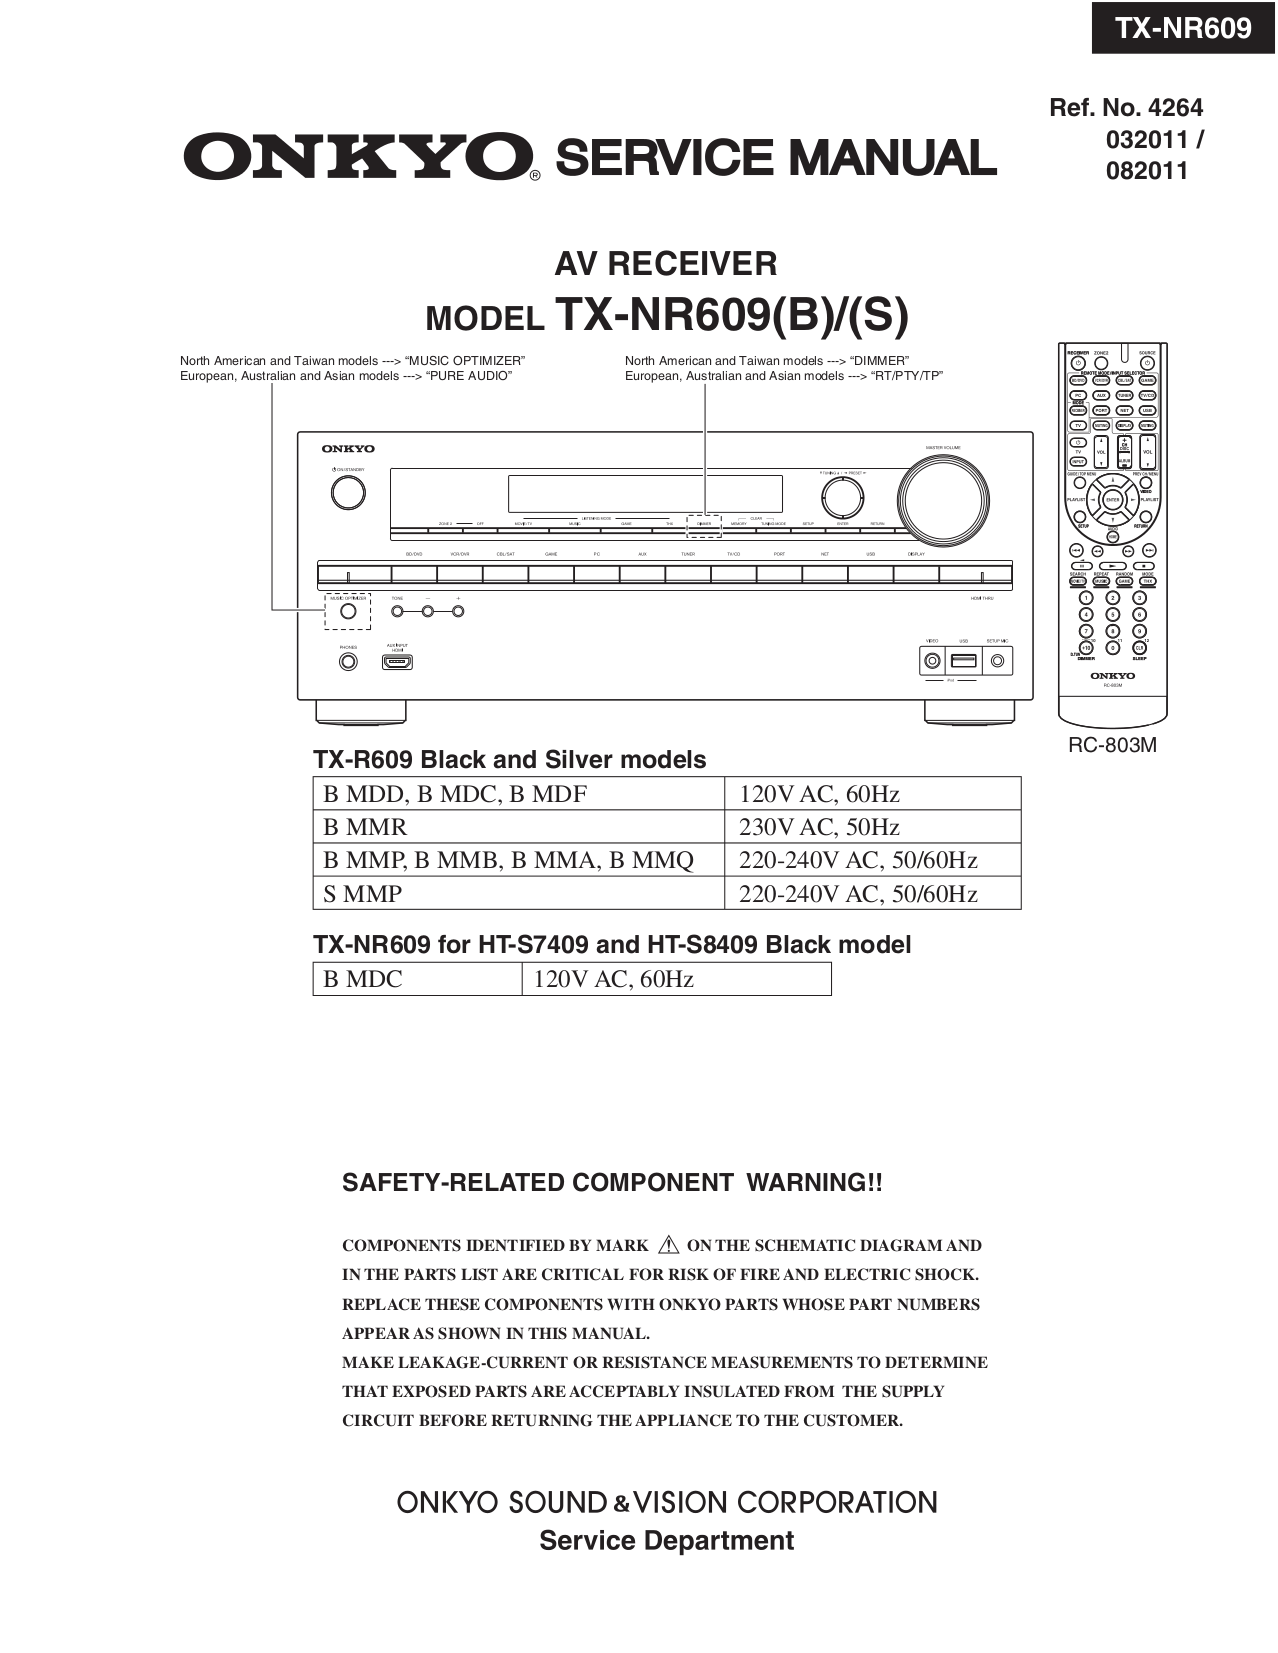 download free pdf for onkyo tx nr609 receiver manual rh umlib com onkyo tx-nr609 specs onkyo tx-nr609 notice